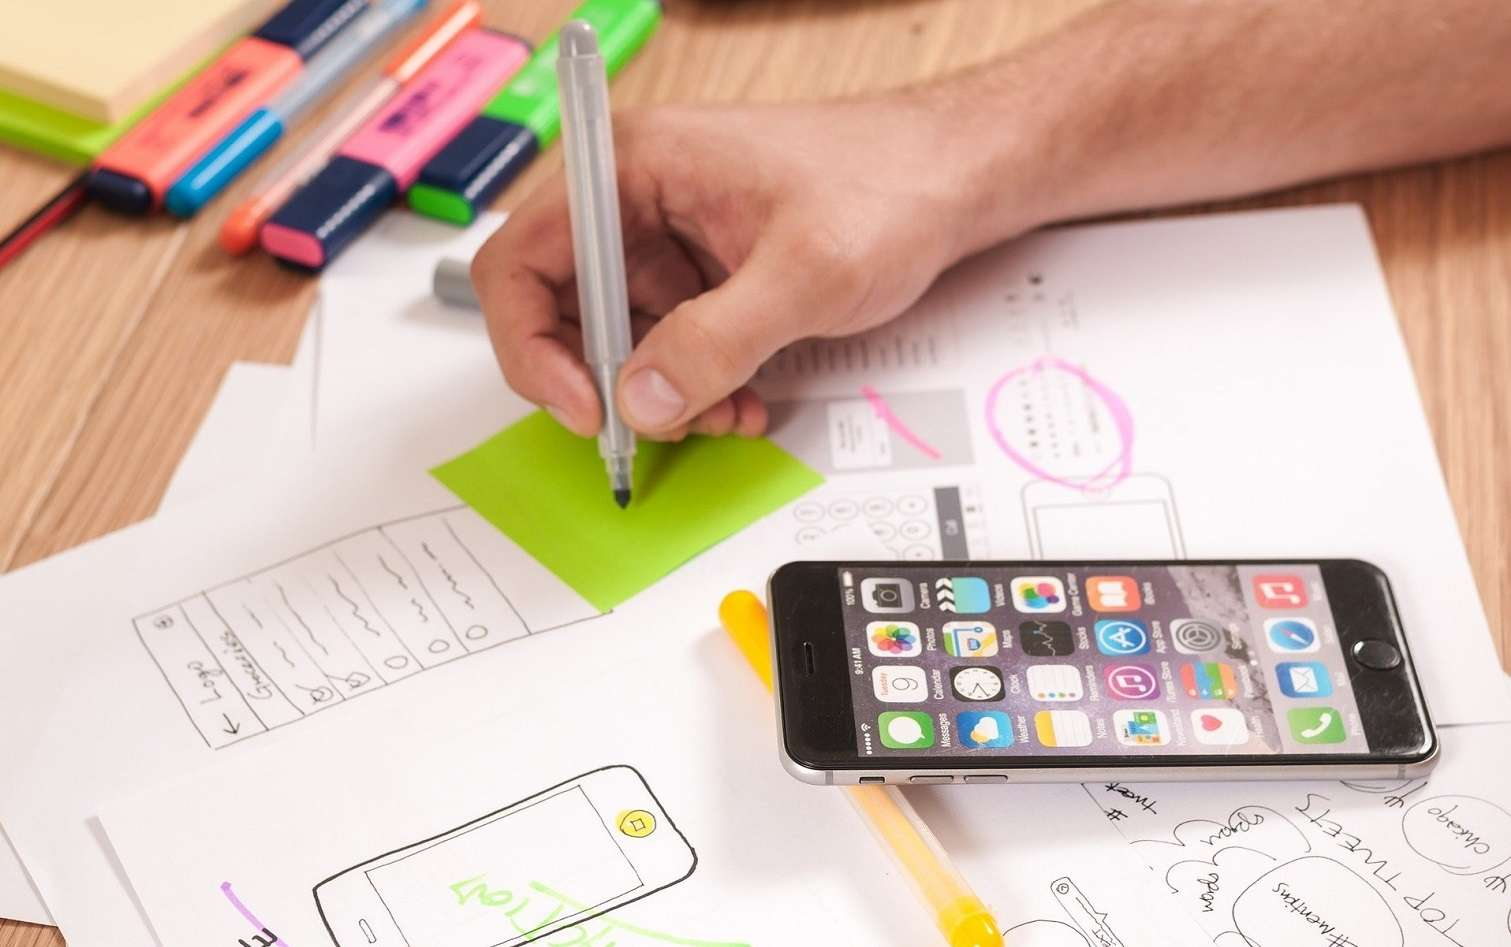 Mobile Web App Development – Crucial Things You Must Consider